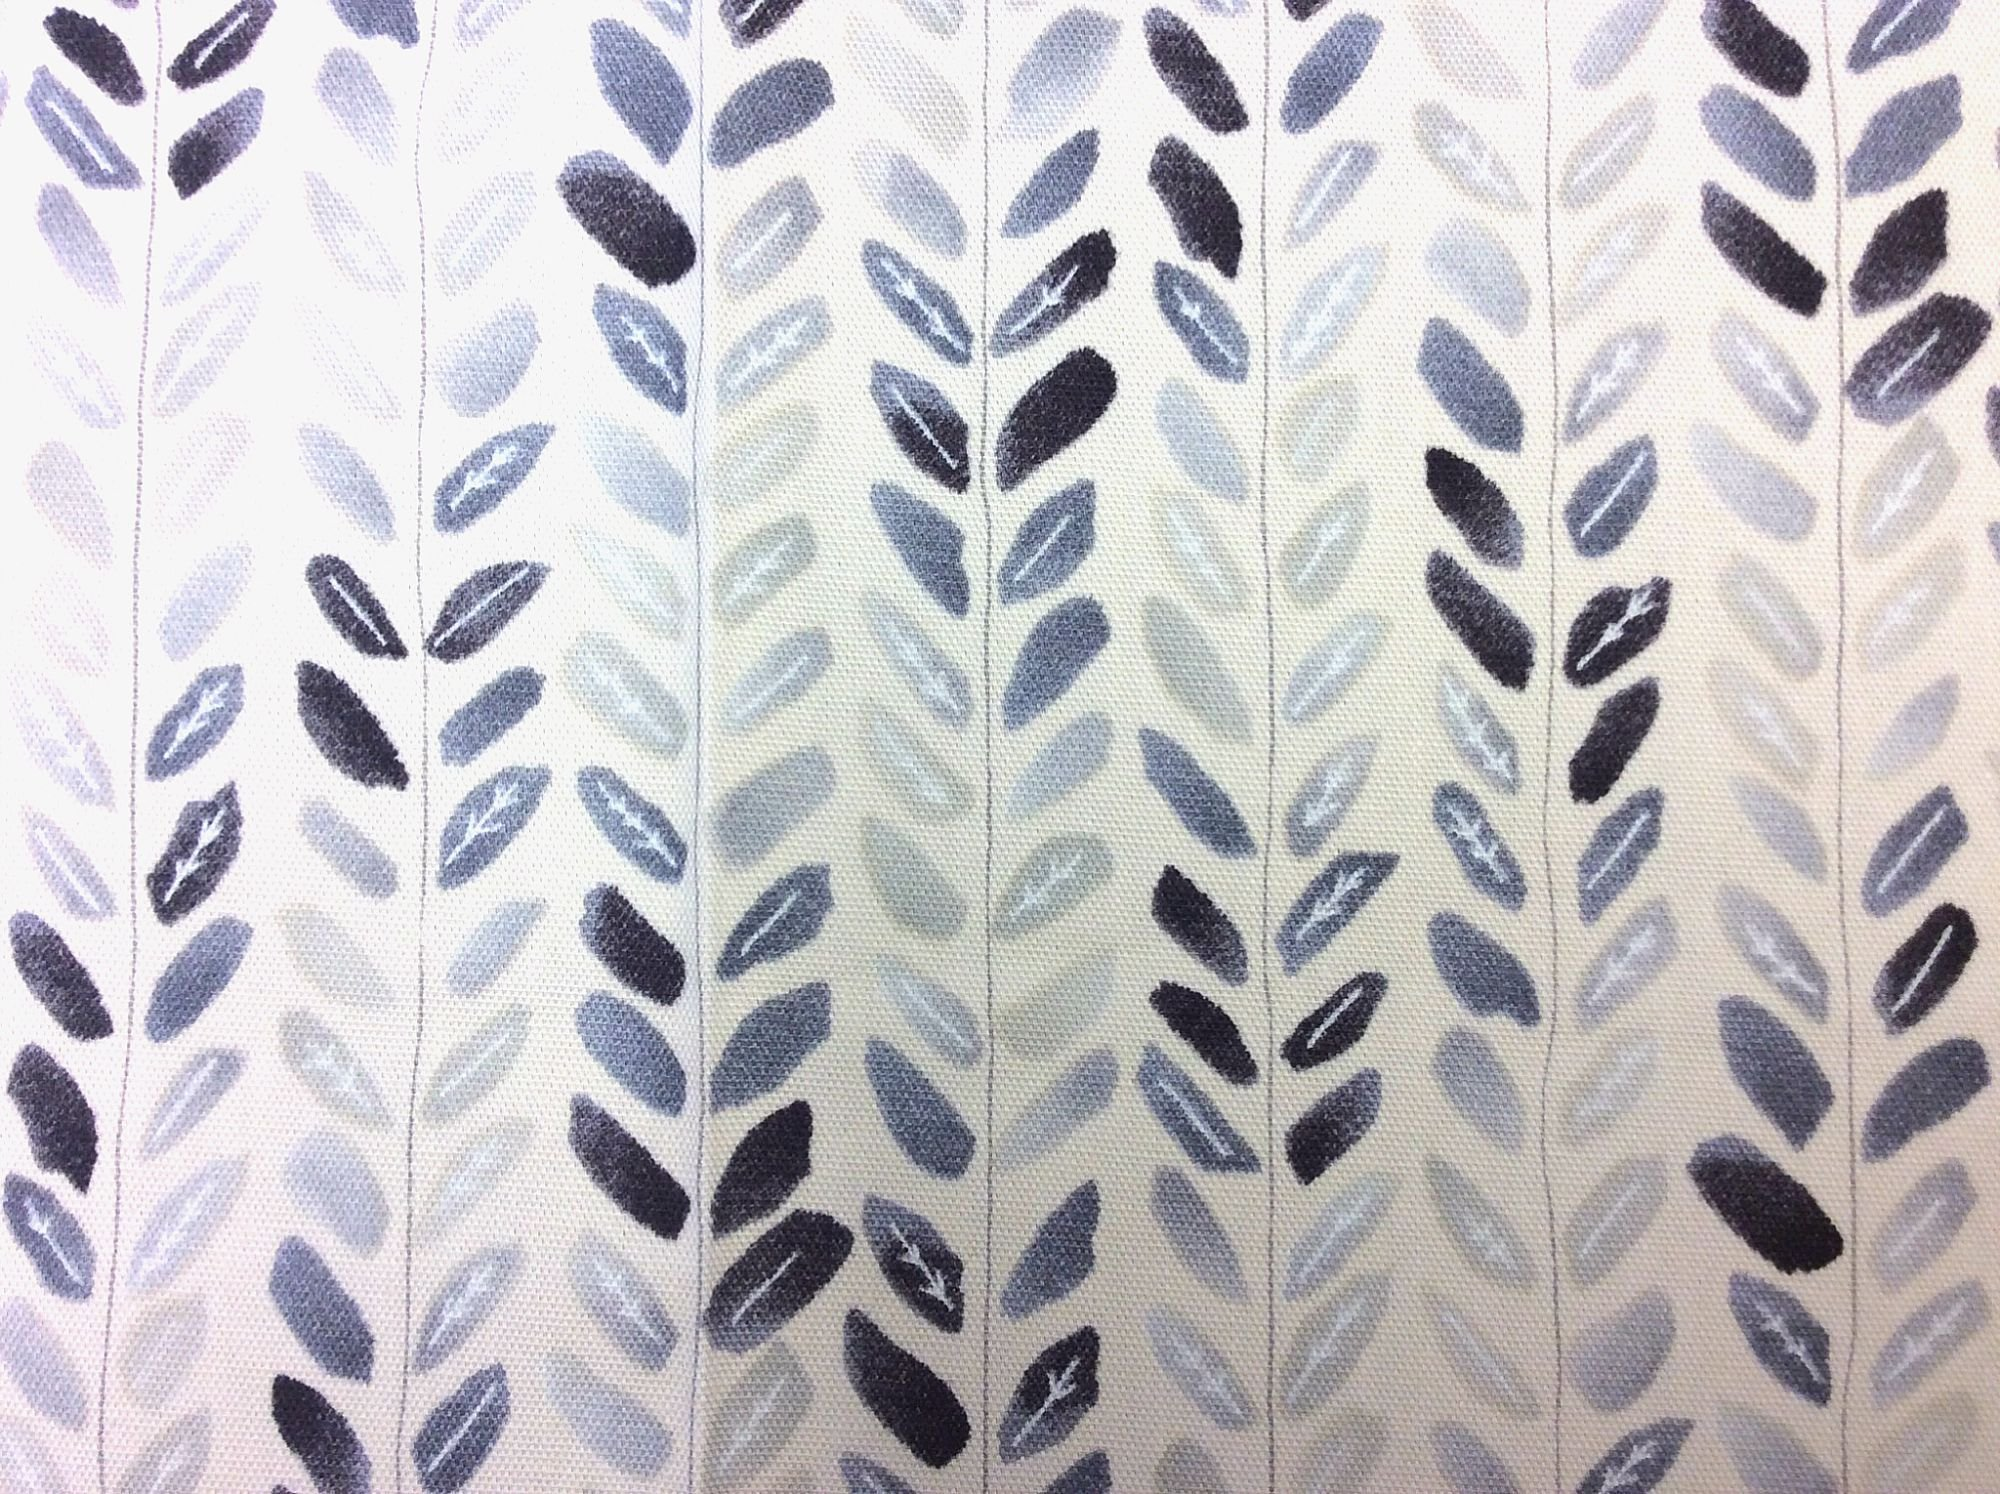 Japanese Asian Watercolor Leaves Little Leaf Grey Shades Oxford Cloth Cotton Fabric QH33